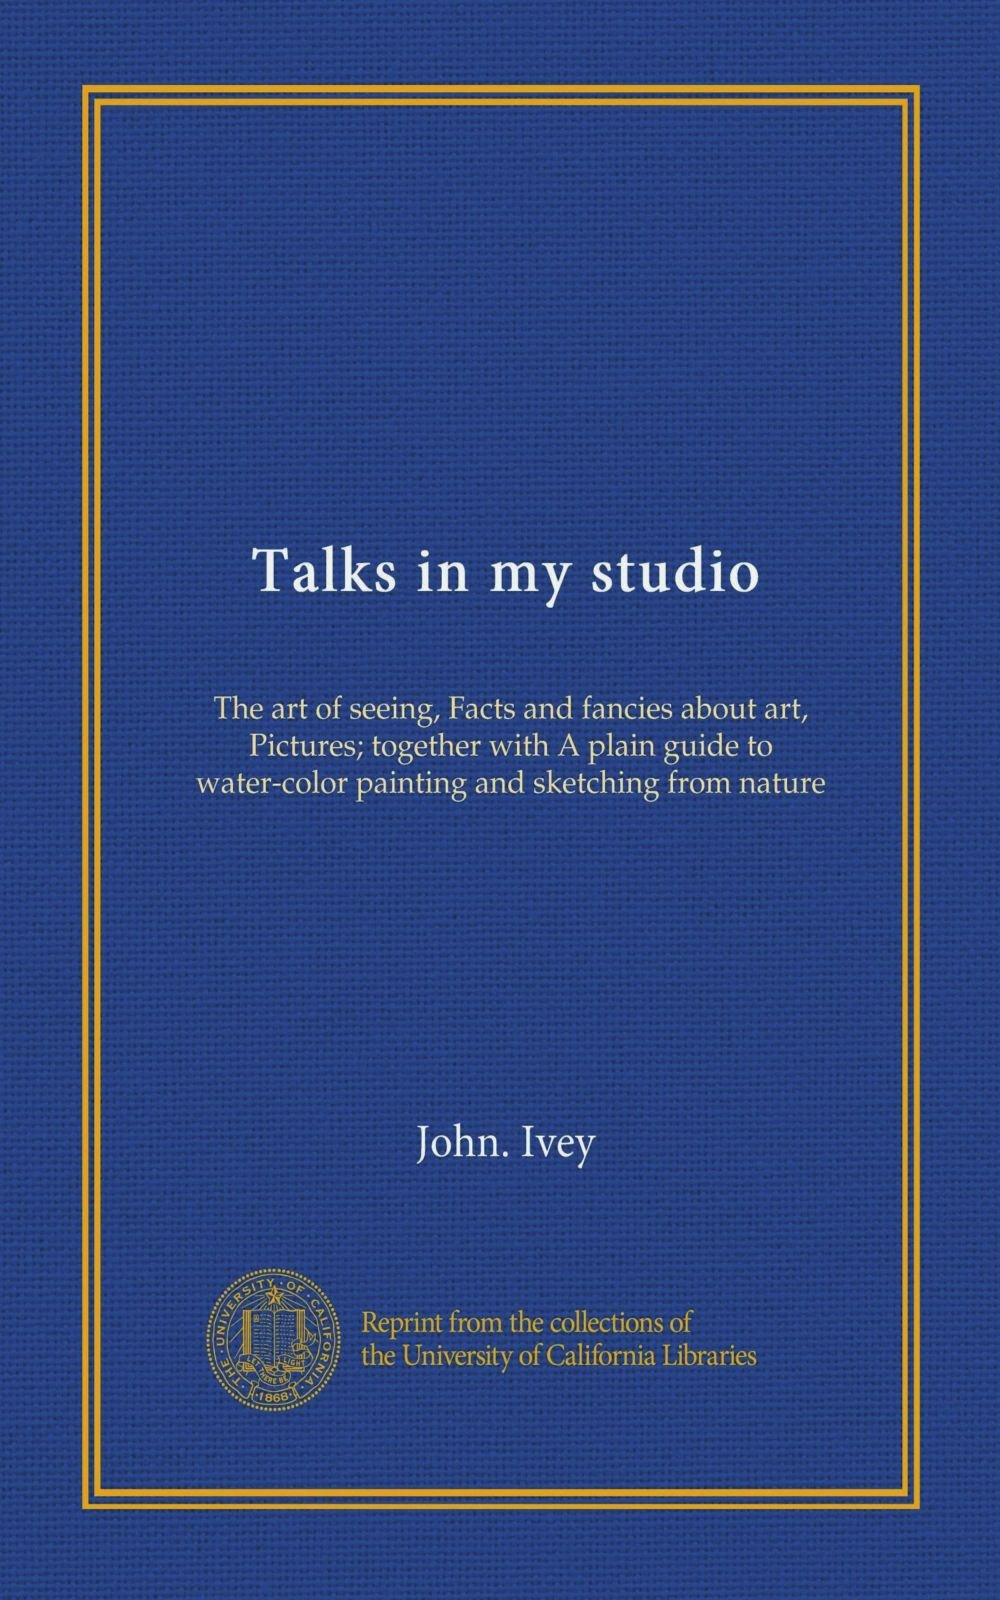 Talks in my studio: The art of seeing, Facts and fancies about art, Pictures; together with A plain guide to water-color painting and sketching from nature pdf